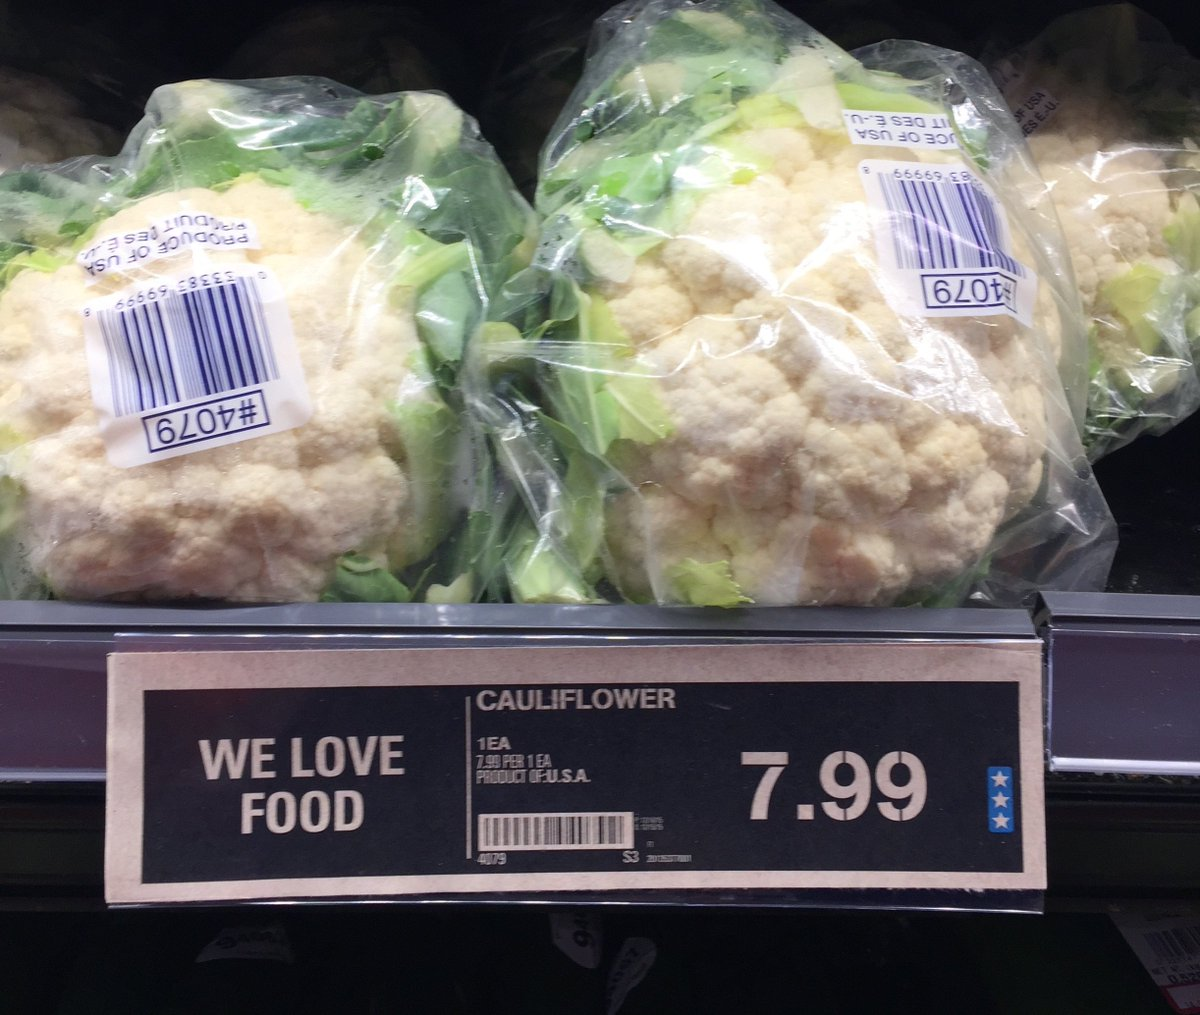 @sladurantaye Heh. Had a similar reaction when I saw the price of cauliflower. Welcome to the future… https://t.co/fxloxyePY3